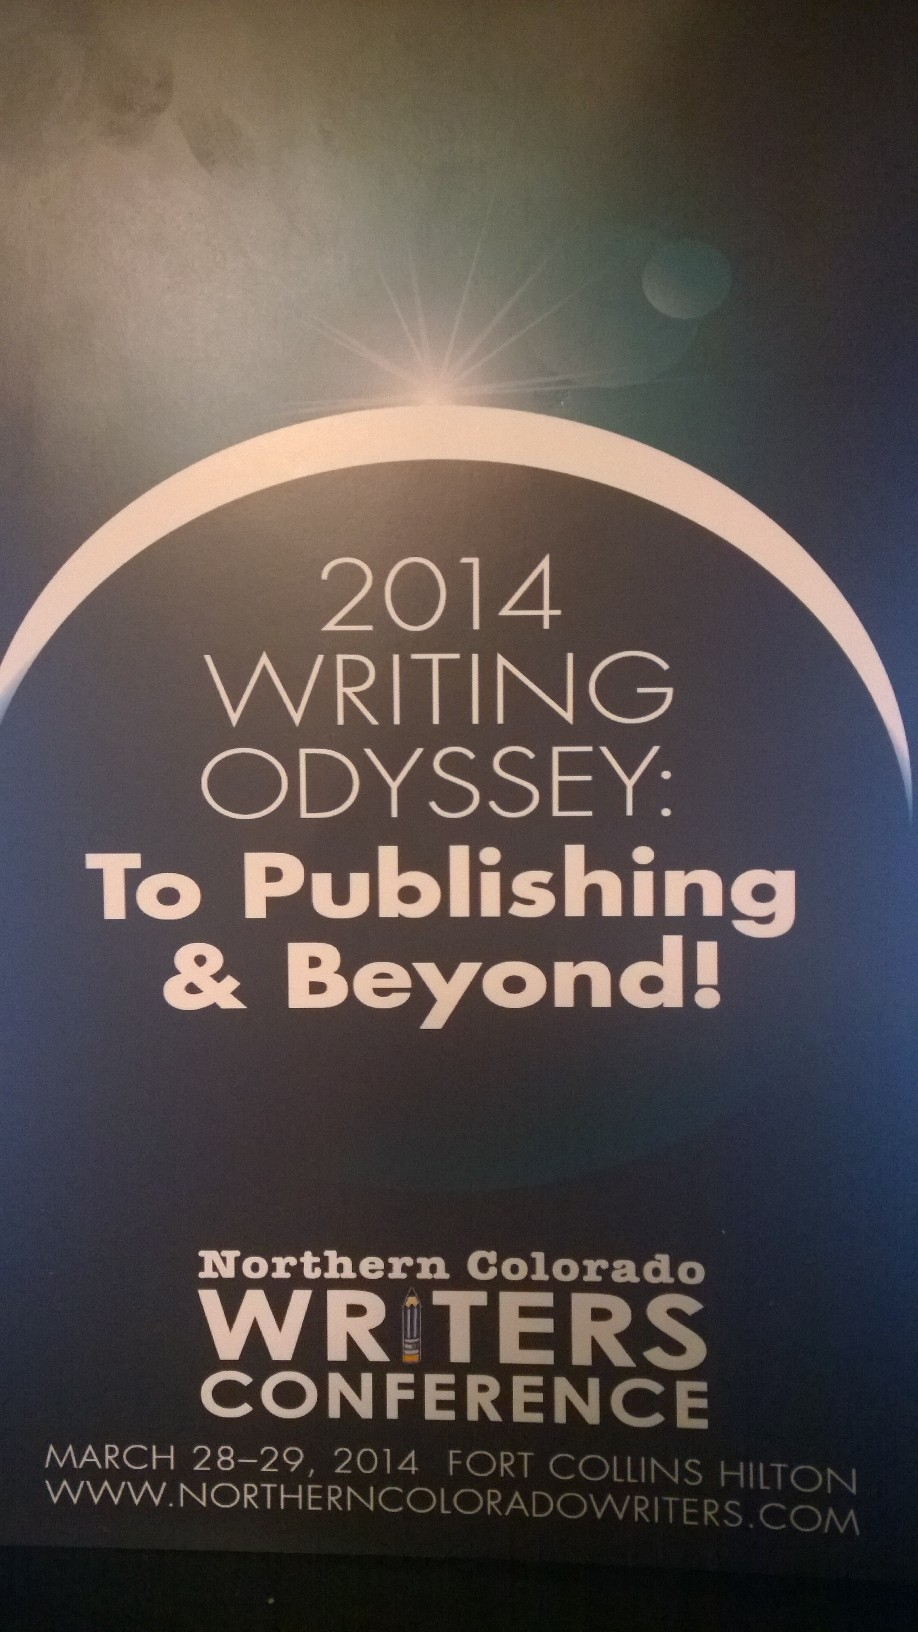 Conference recap: Northern Colorado Writers Conference 2014!